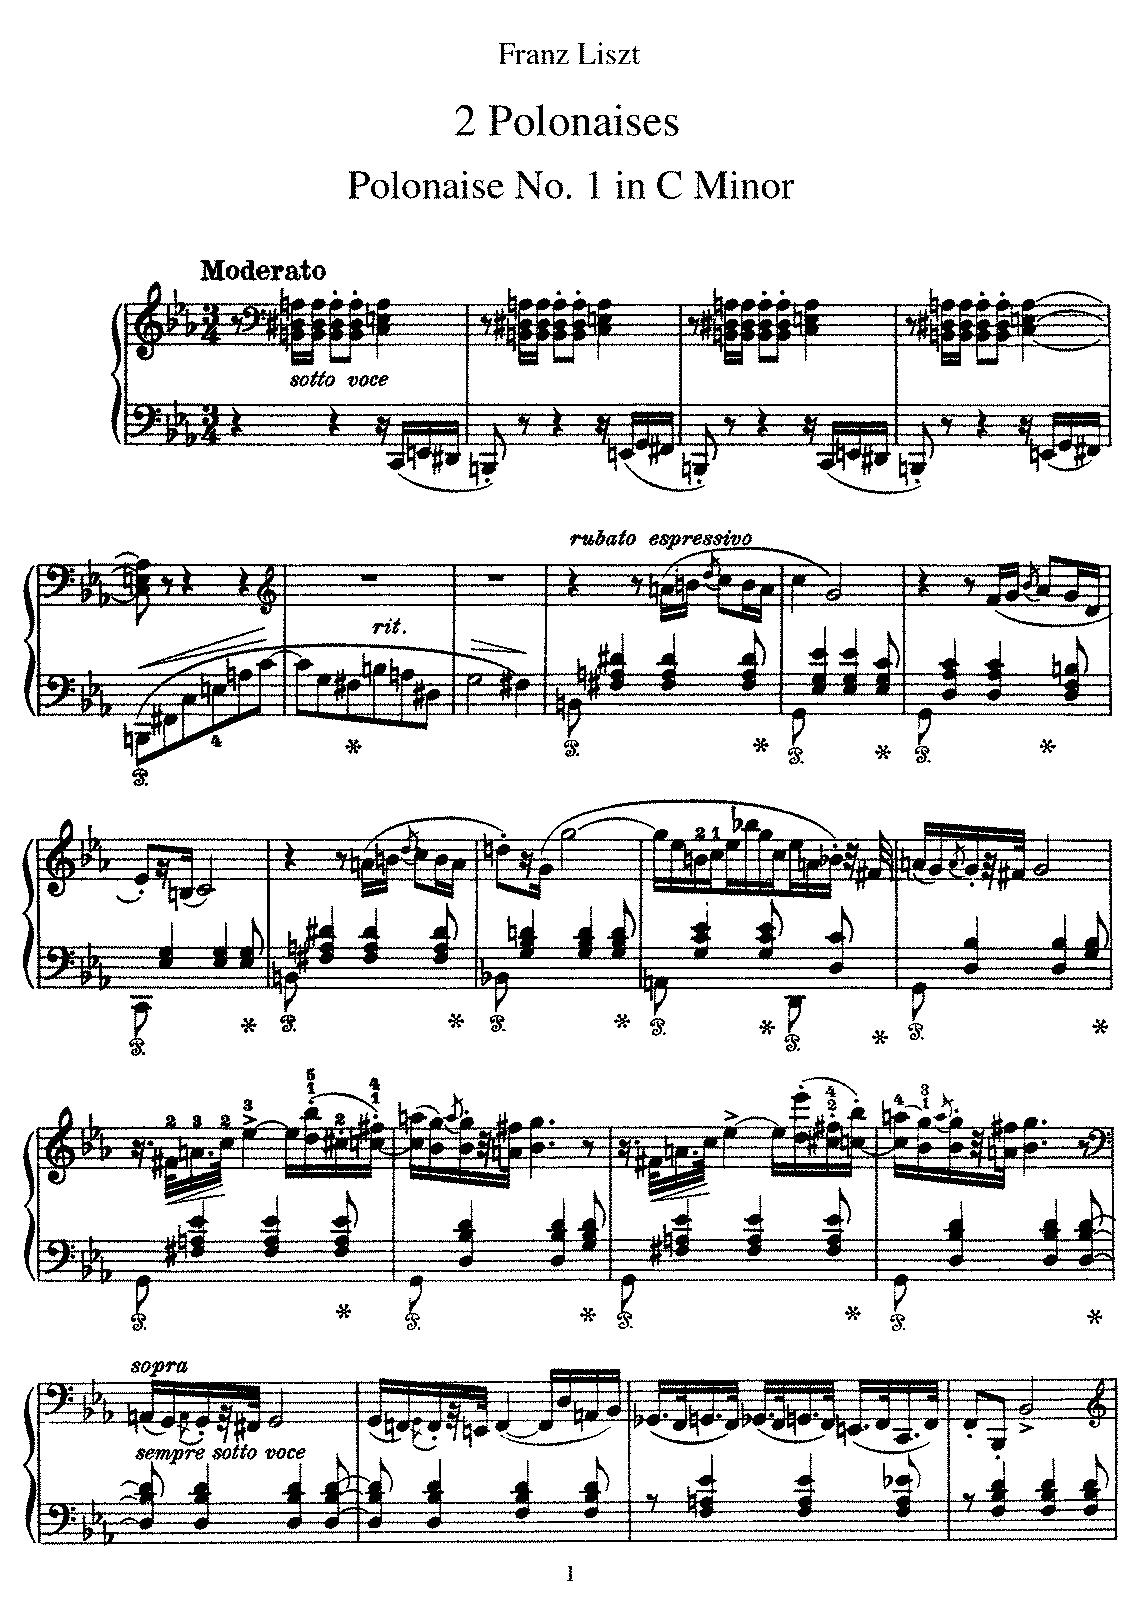 Liszt - S223 Deux Polonaises No1 in C minor.pdf